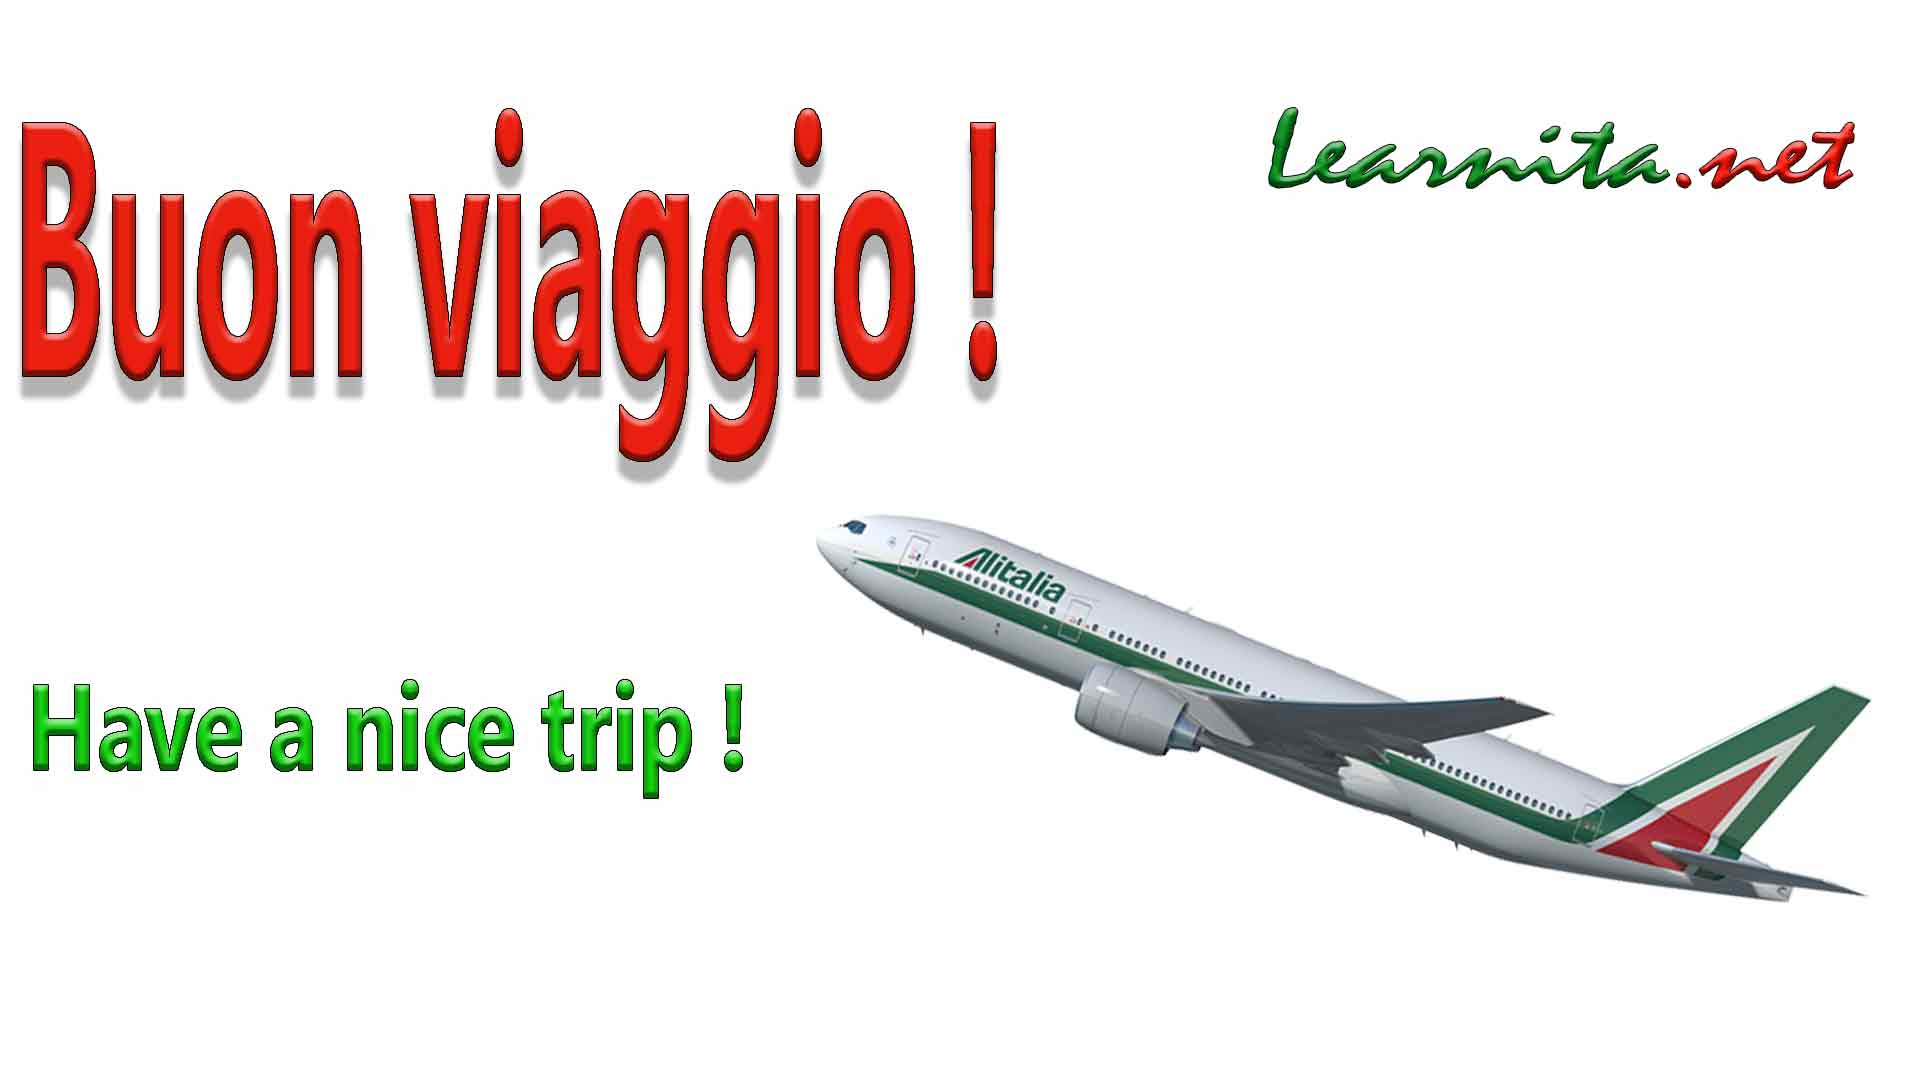 have a nice trip in italian